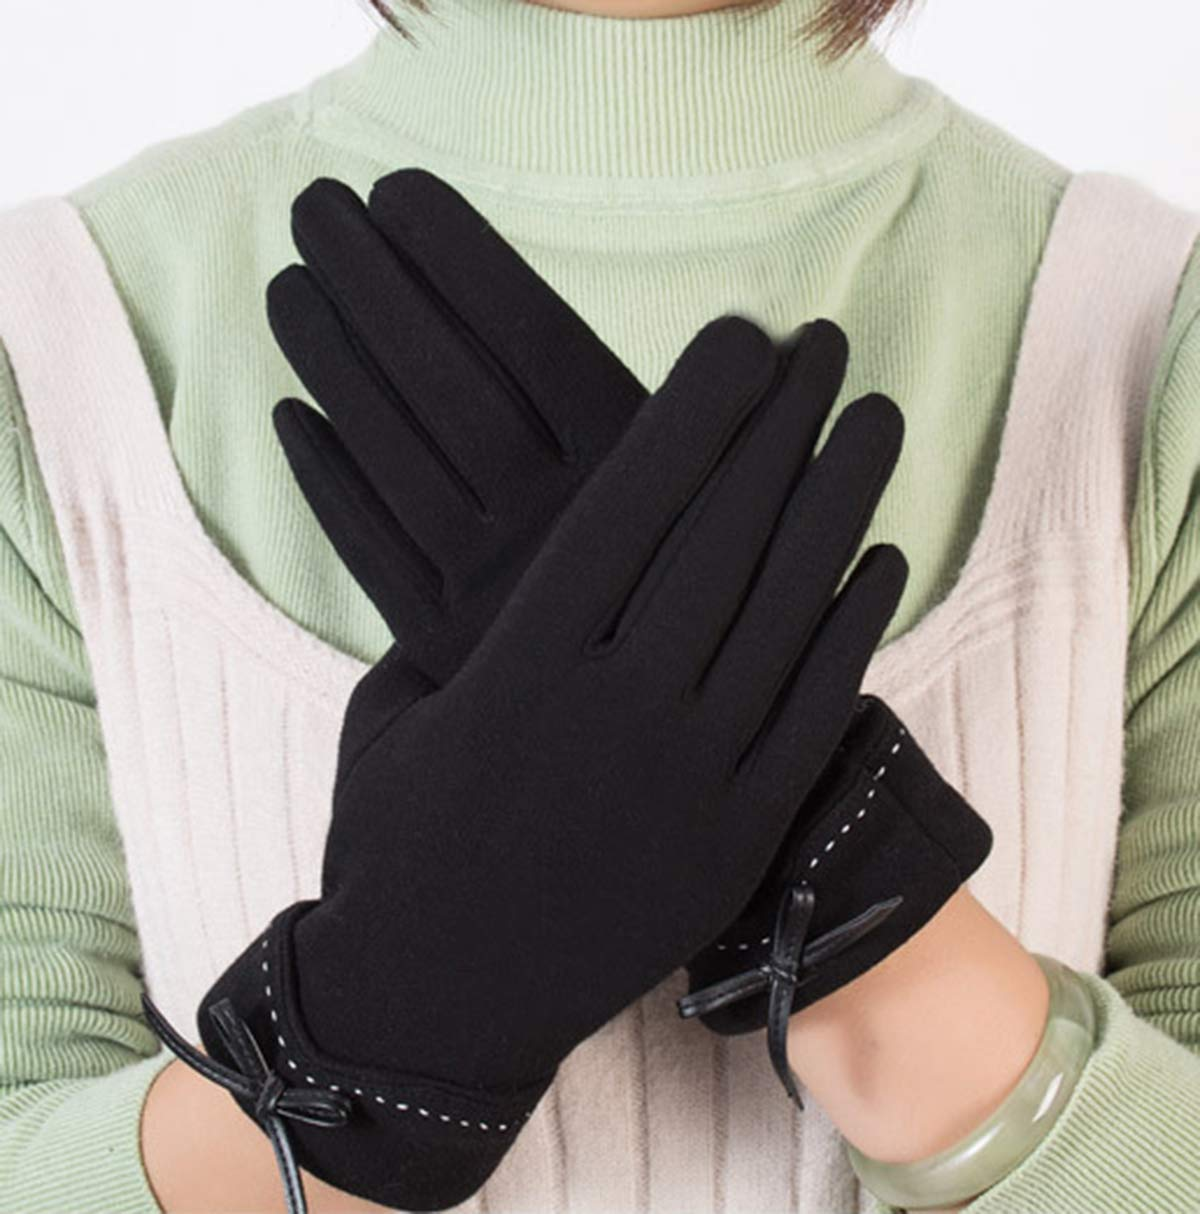 Spikerking Womens Winter Gloves With Touch Screen And Warm Liners,Black